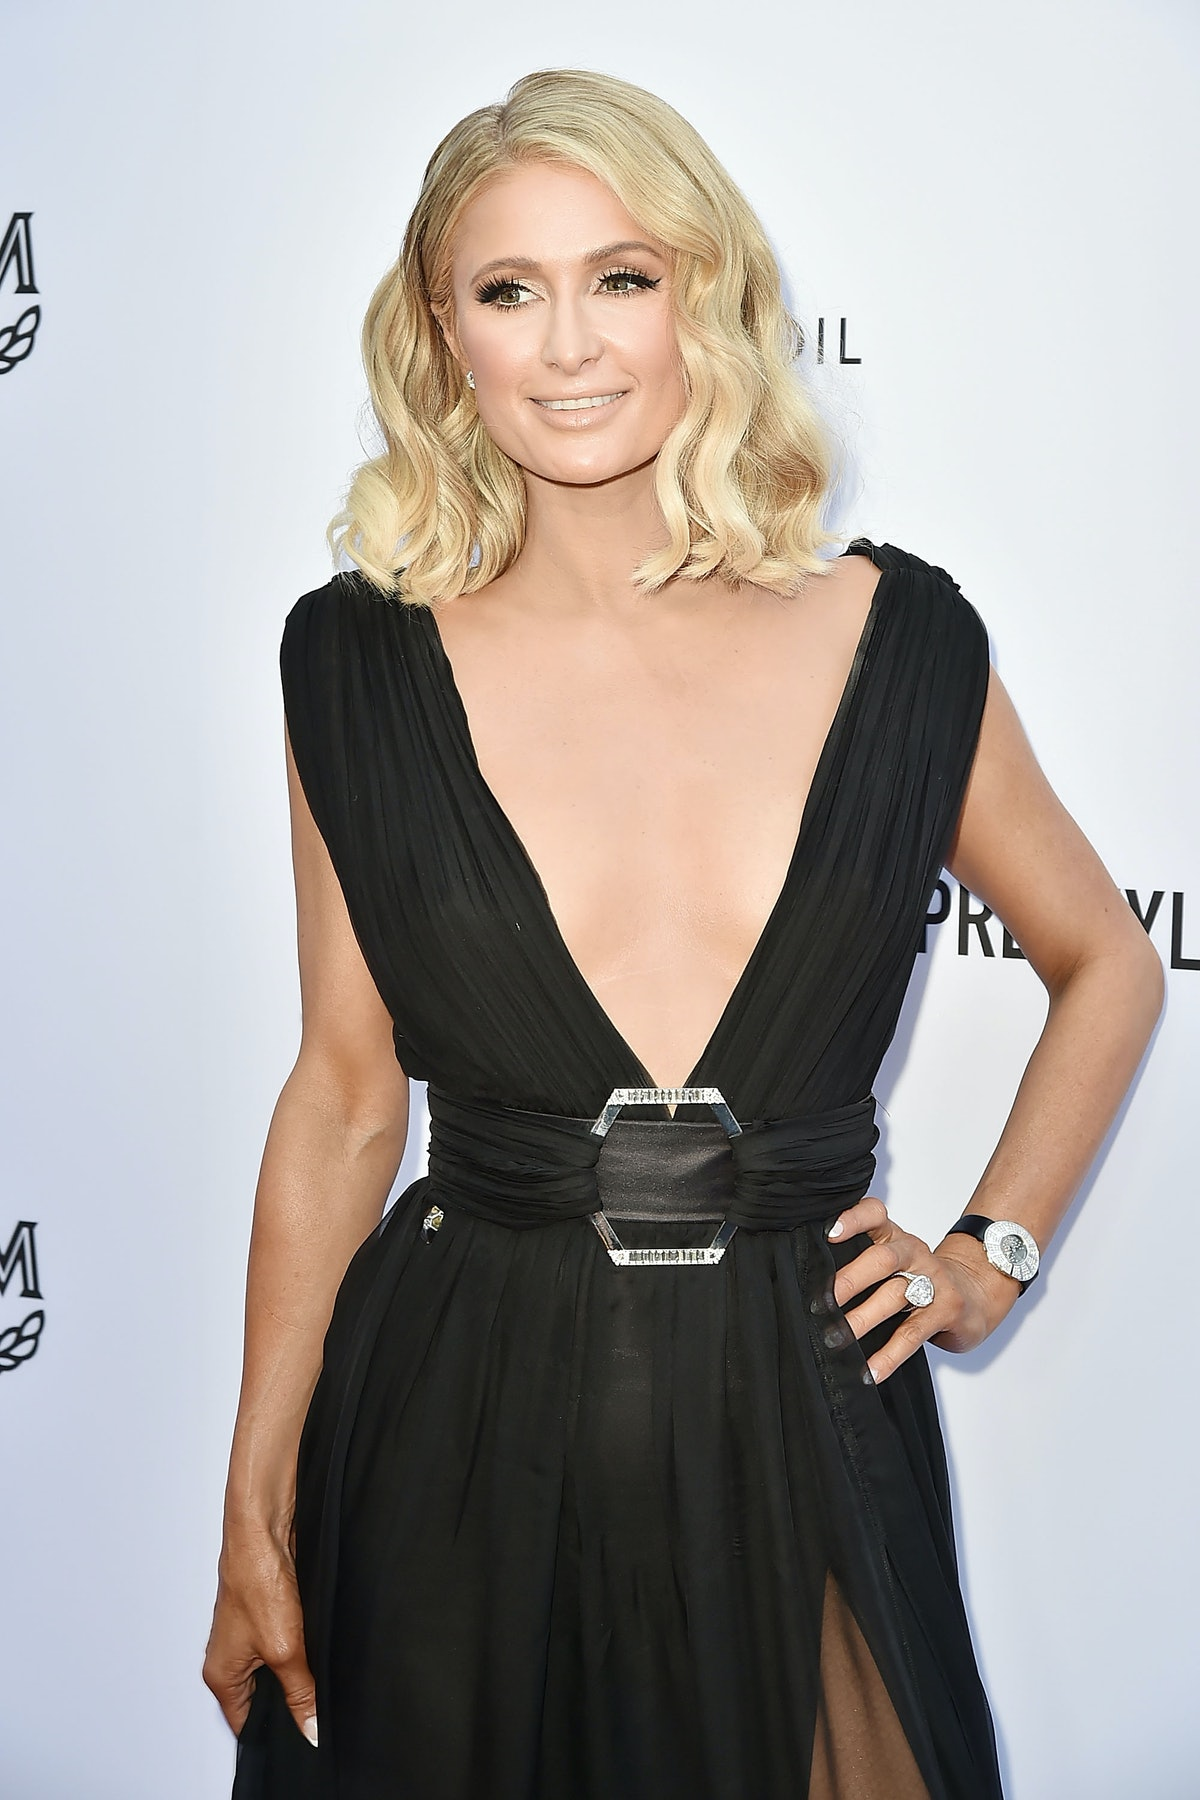 Paris Hilton attends The Daily Front Row's 4th Annual Fashion Los Angeles Awards - Arrivals at The B...